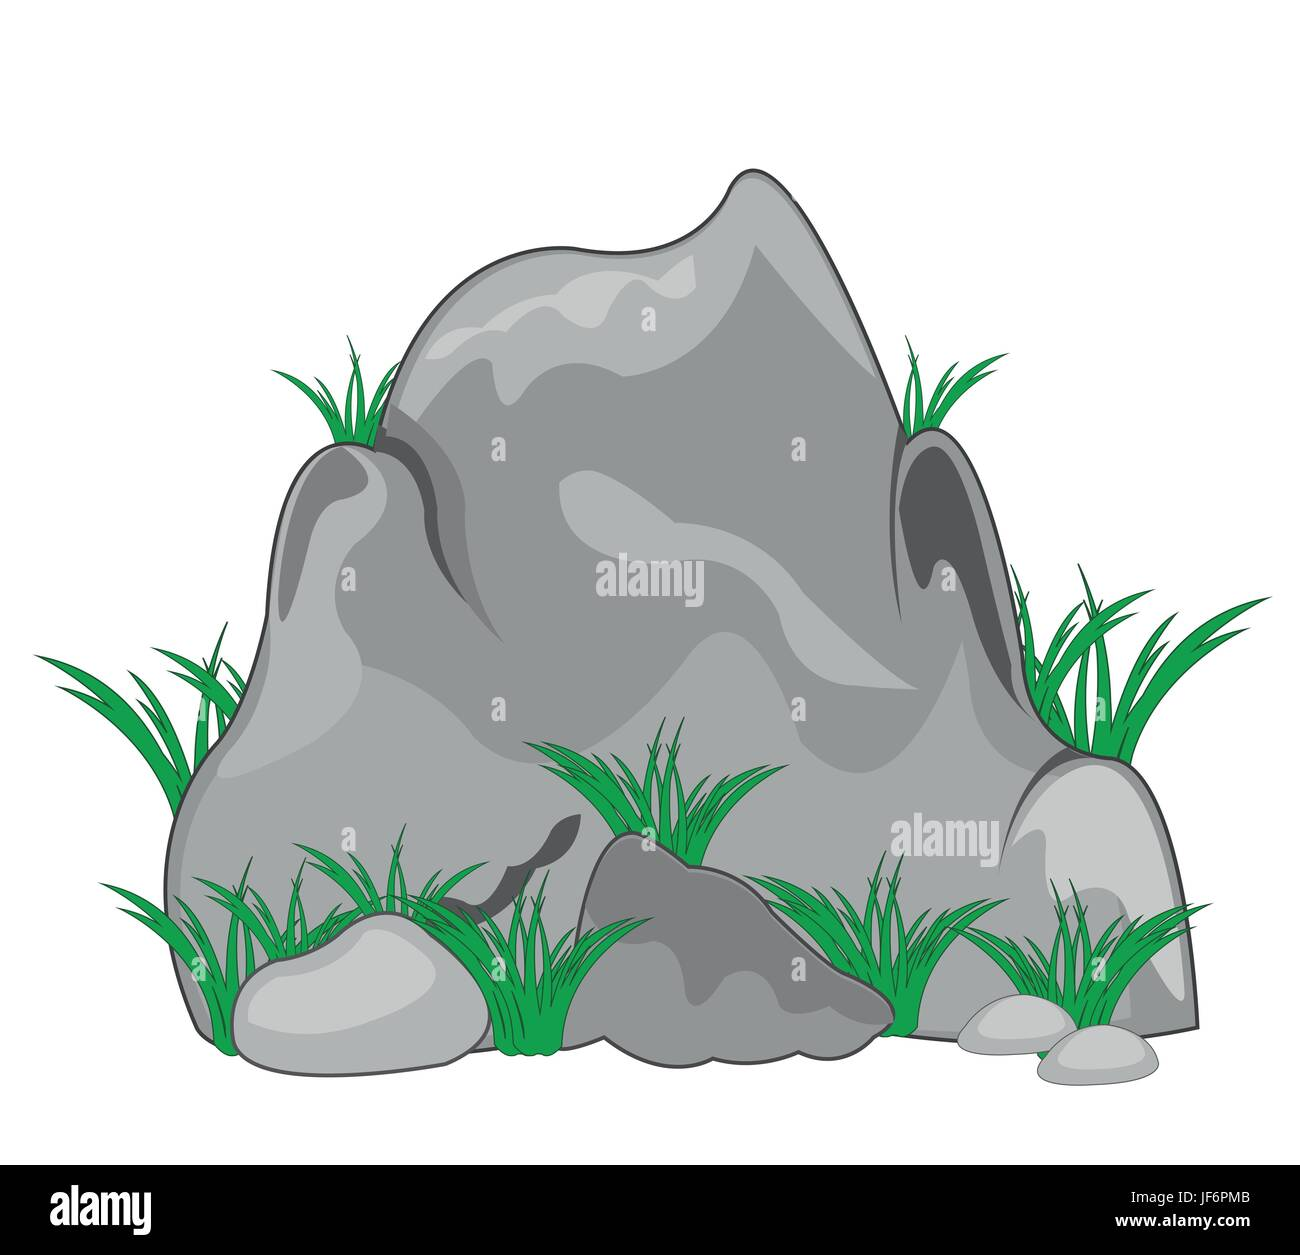 Stone and herb - Stock Vector